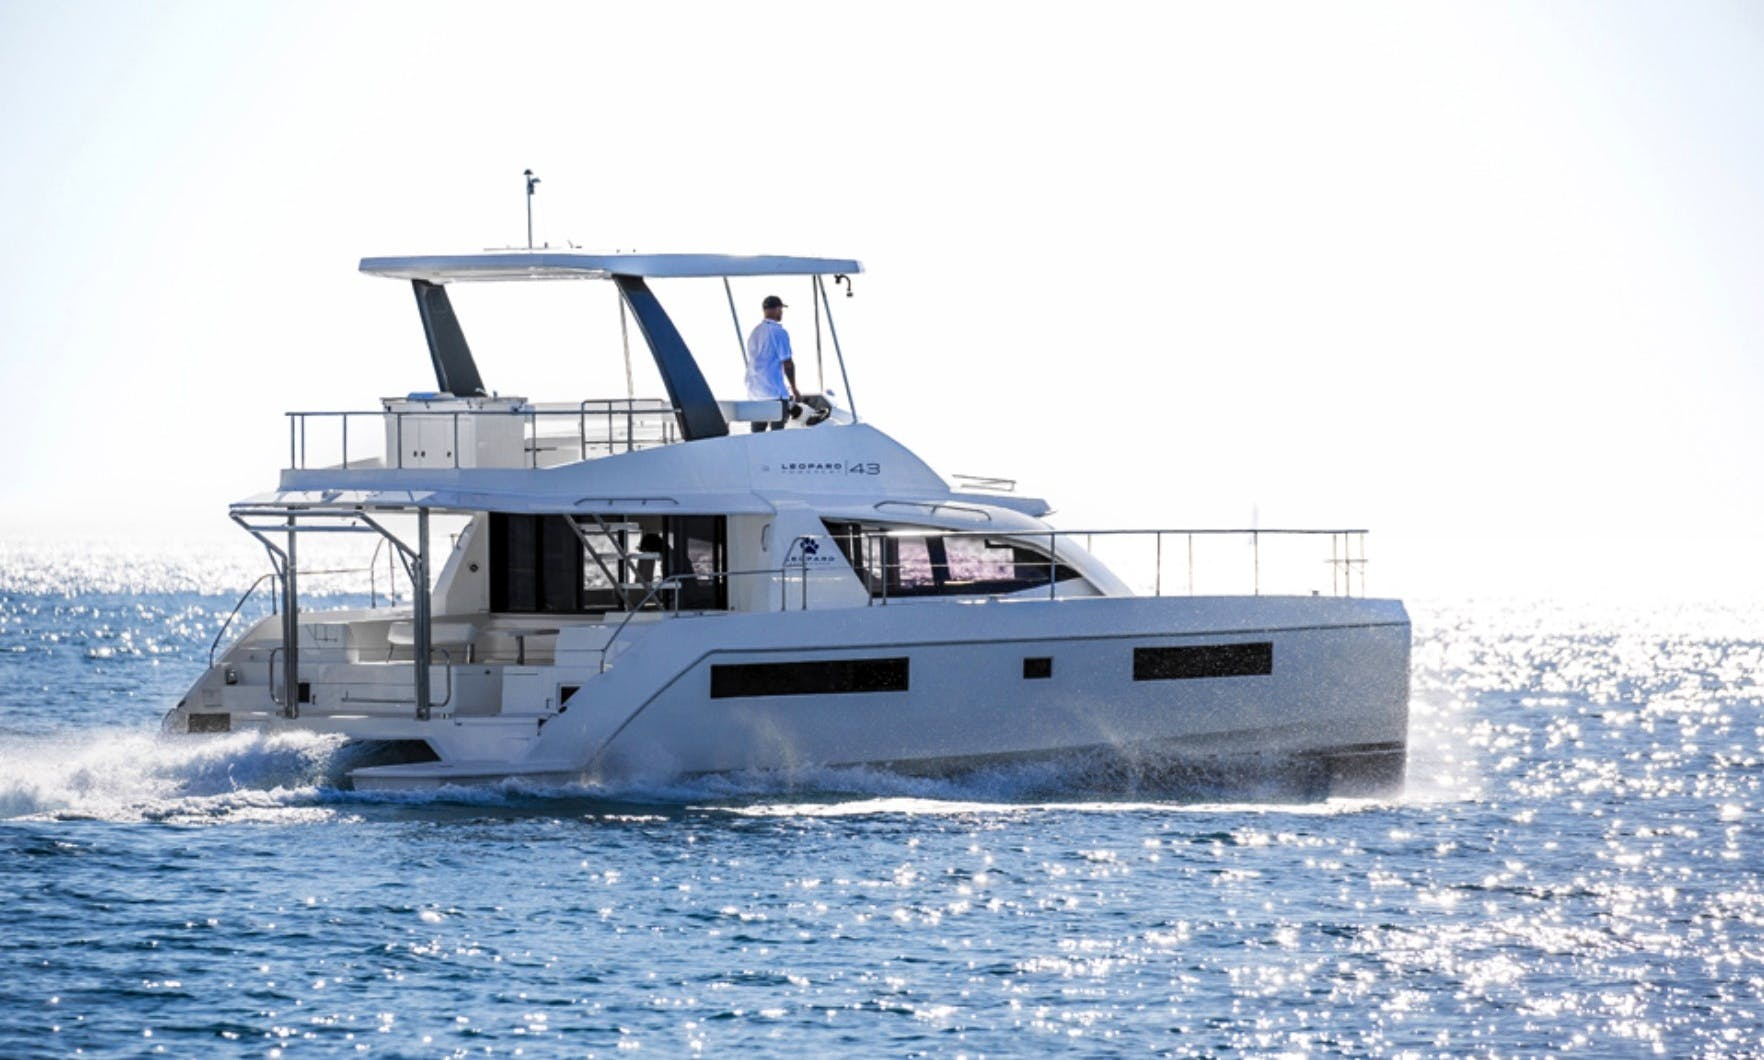 Power Yacht Catamaran rental in Cartagena, Colombia